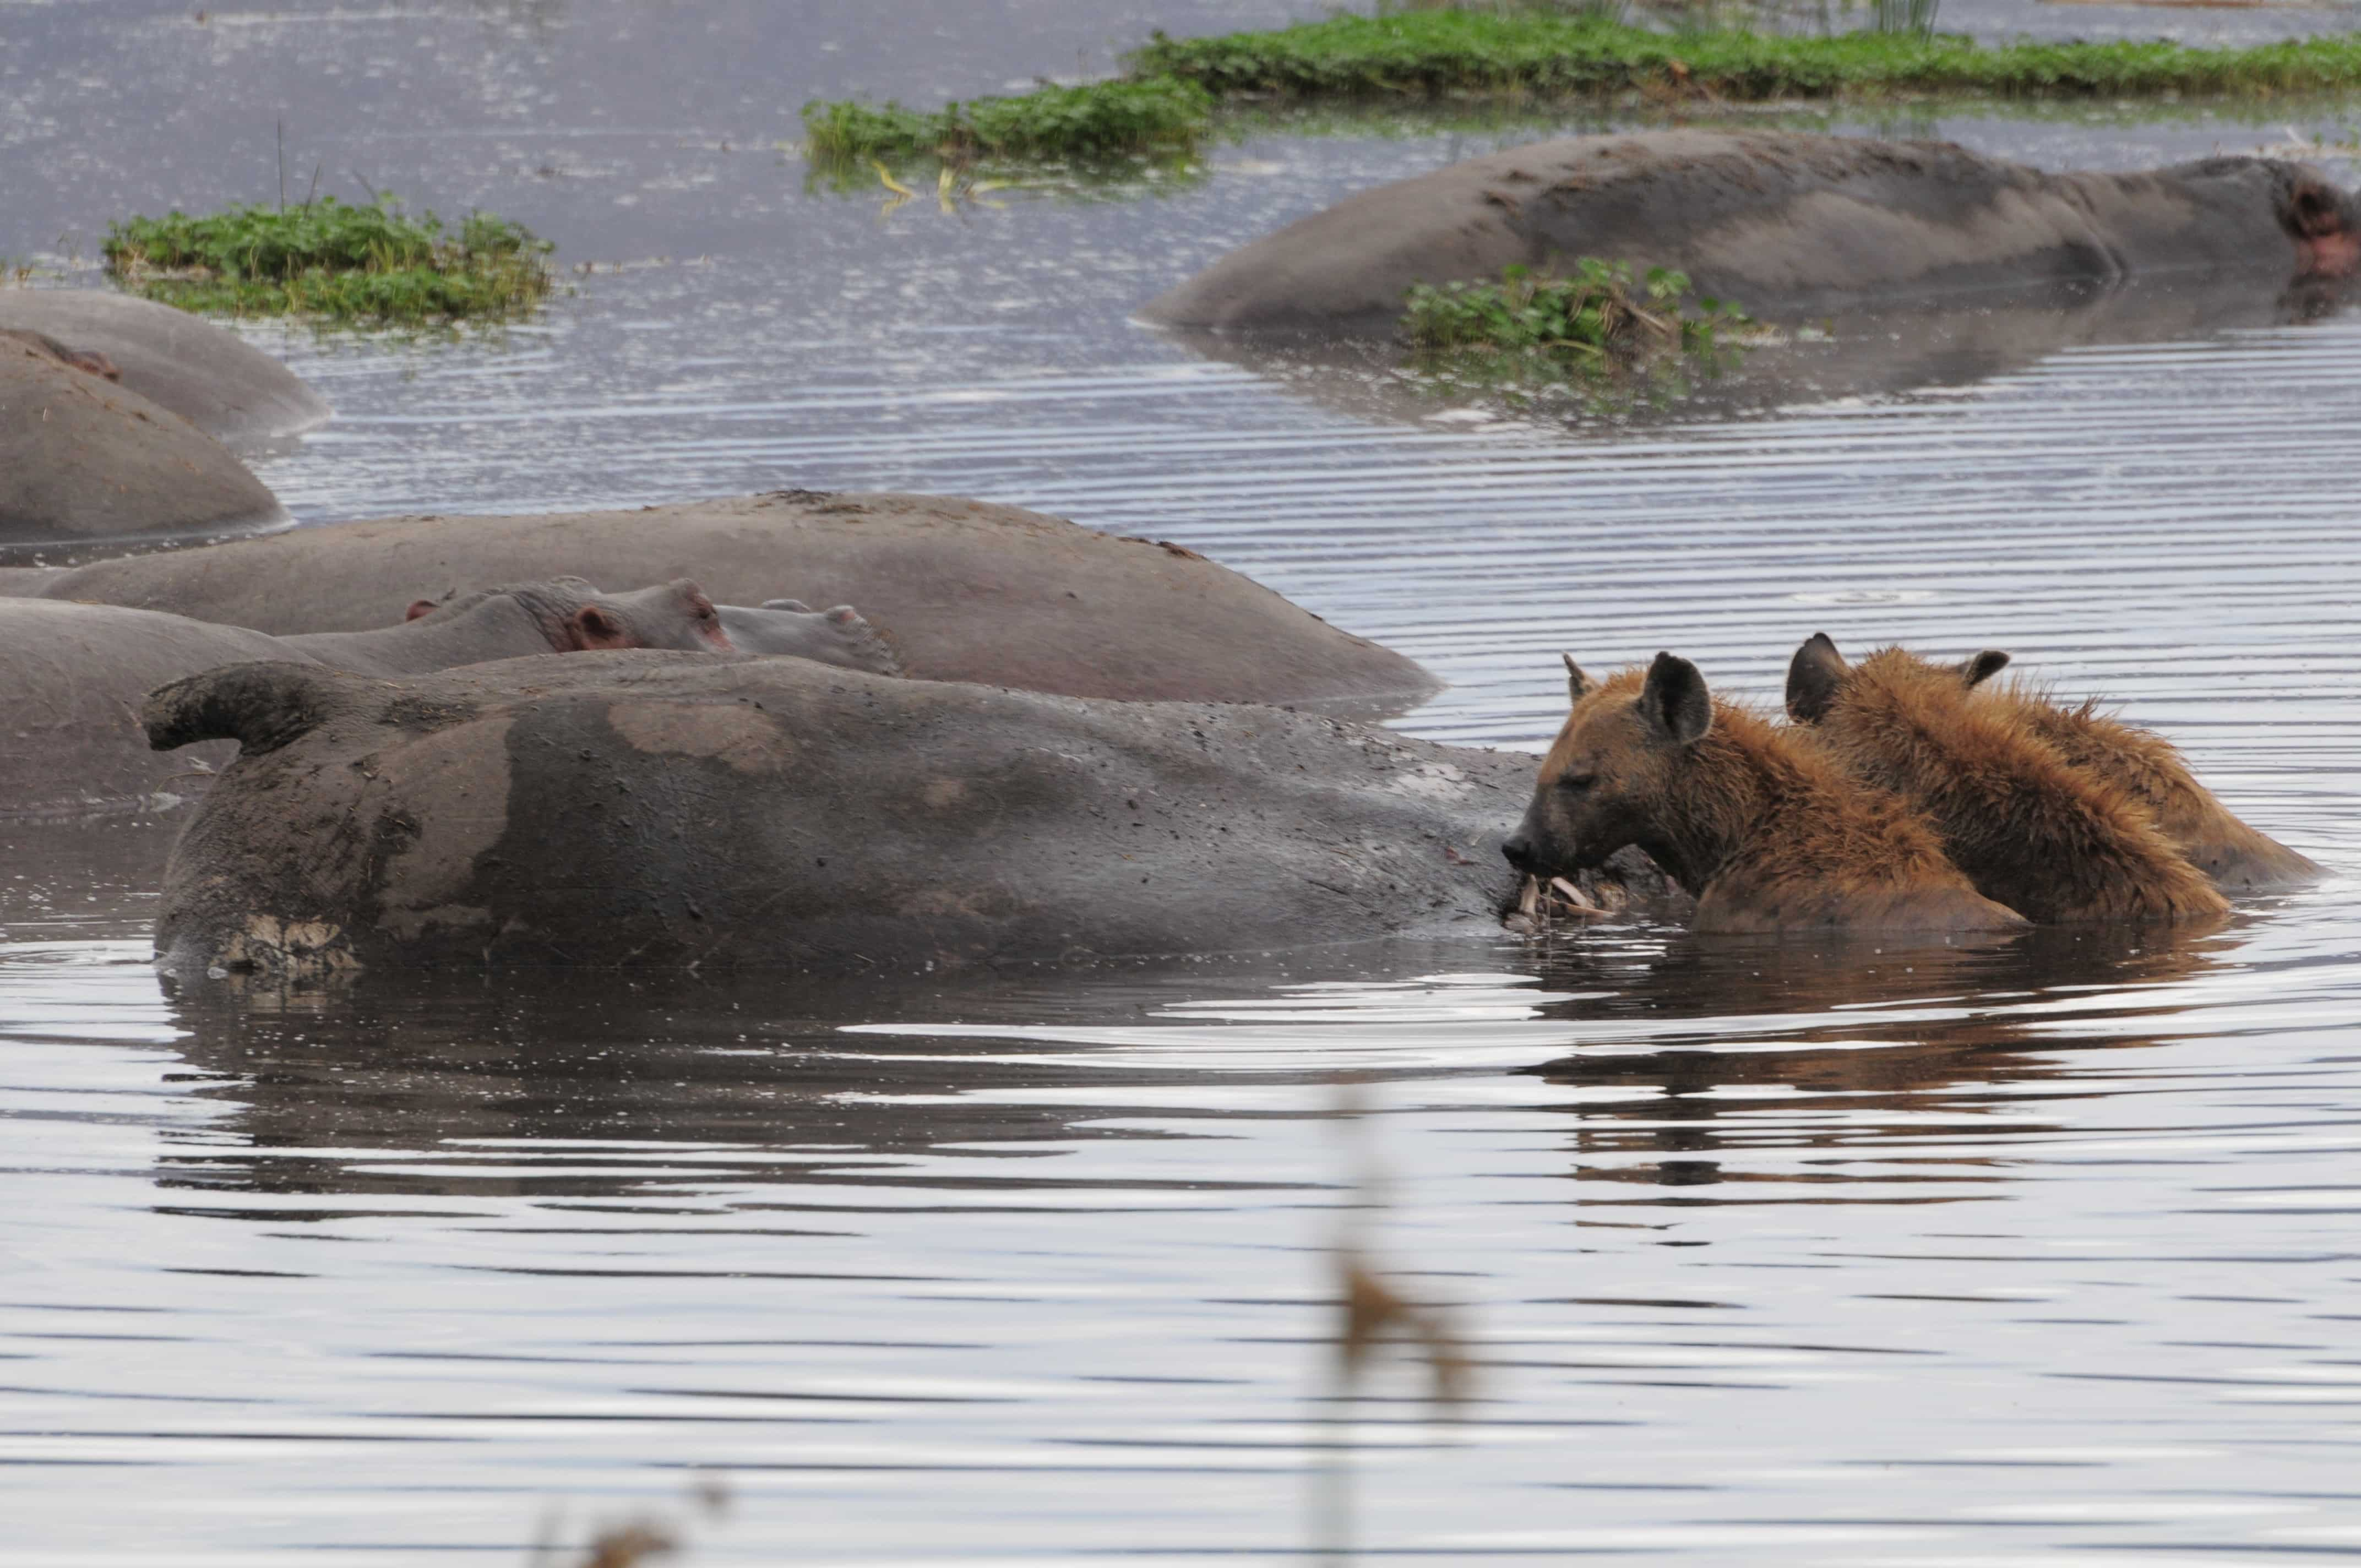 hippo in the pool with hyena